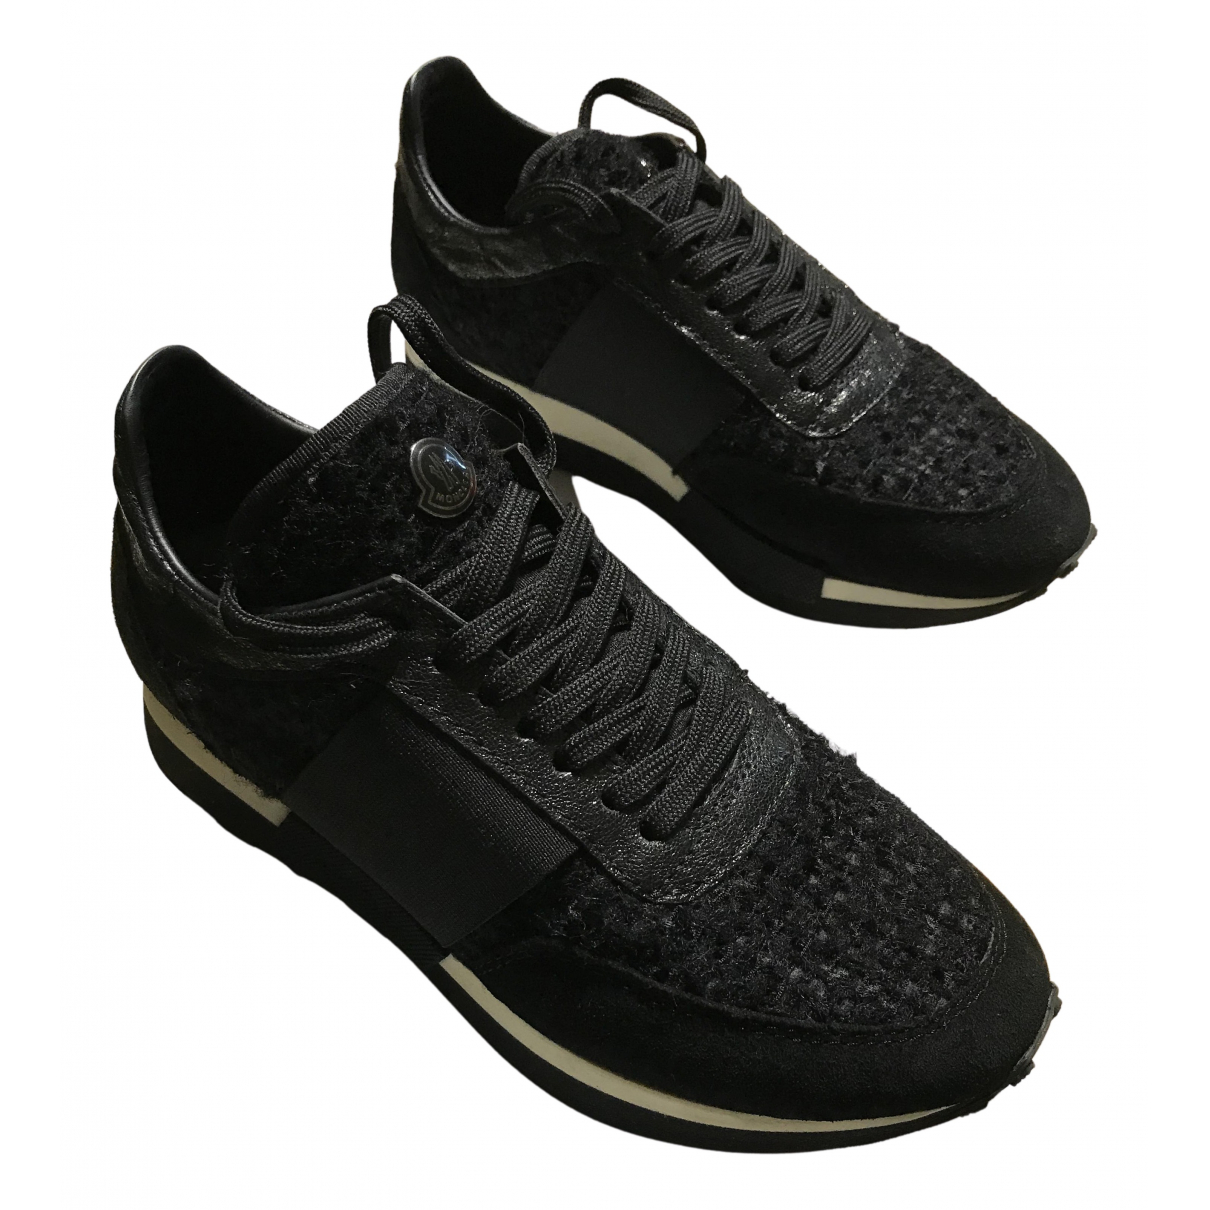 Moncler N Black Leather Trainers for Women 36 EU